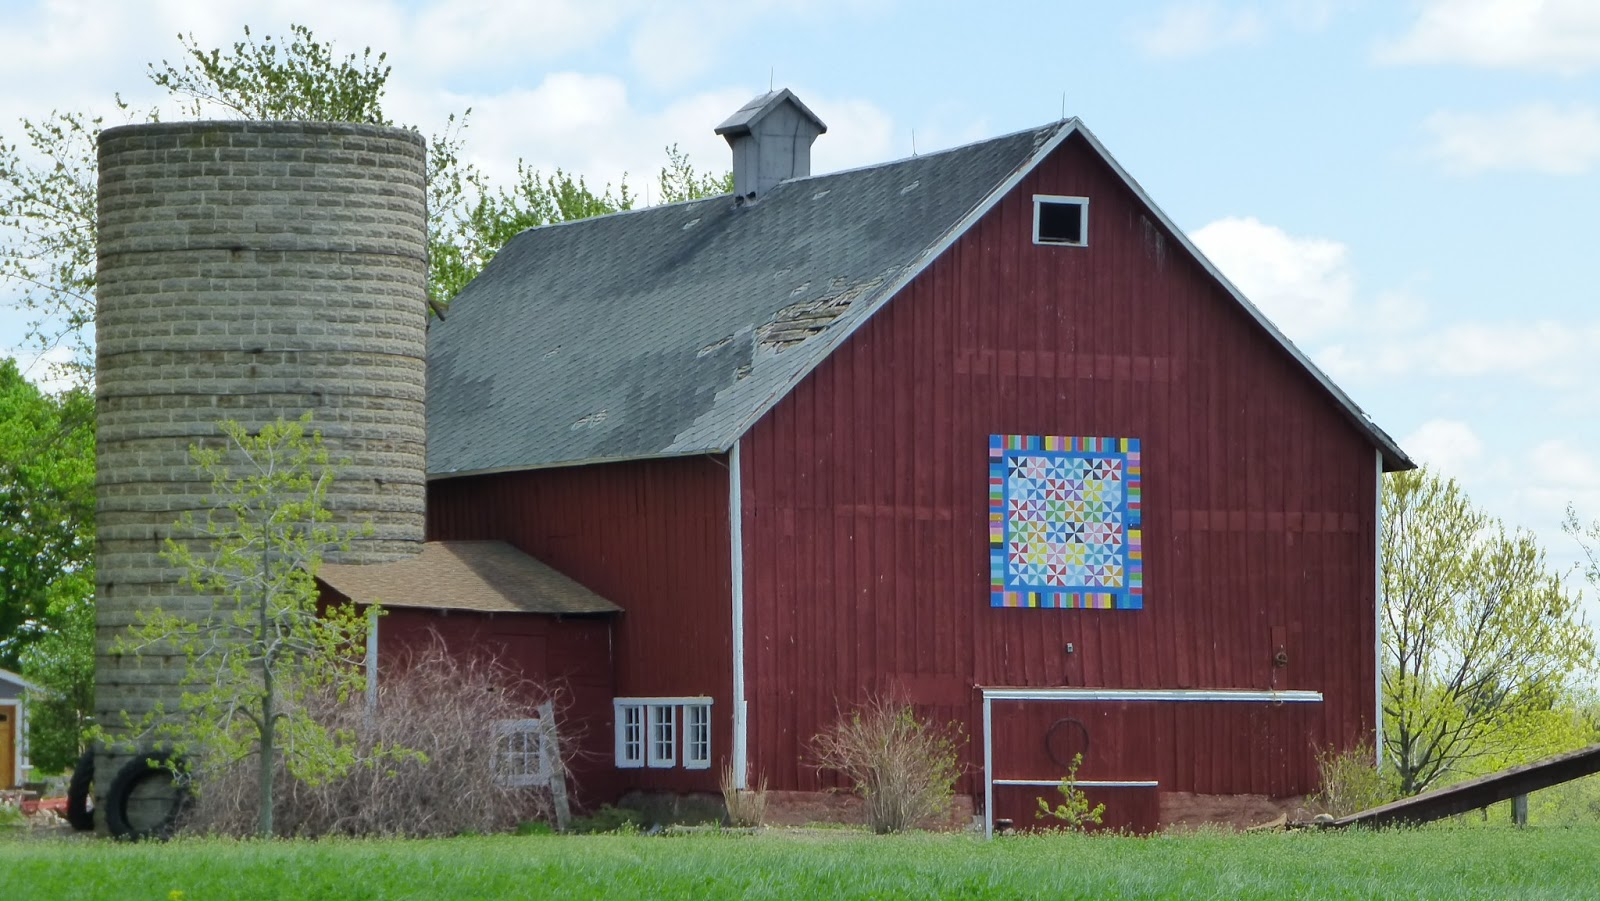 Barn Quilts Miscellaneous Barn Quilts